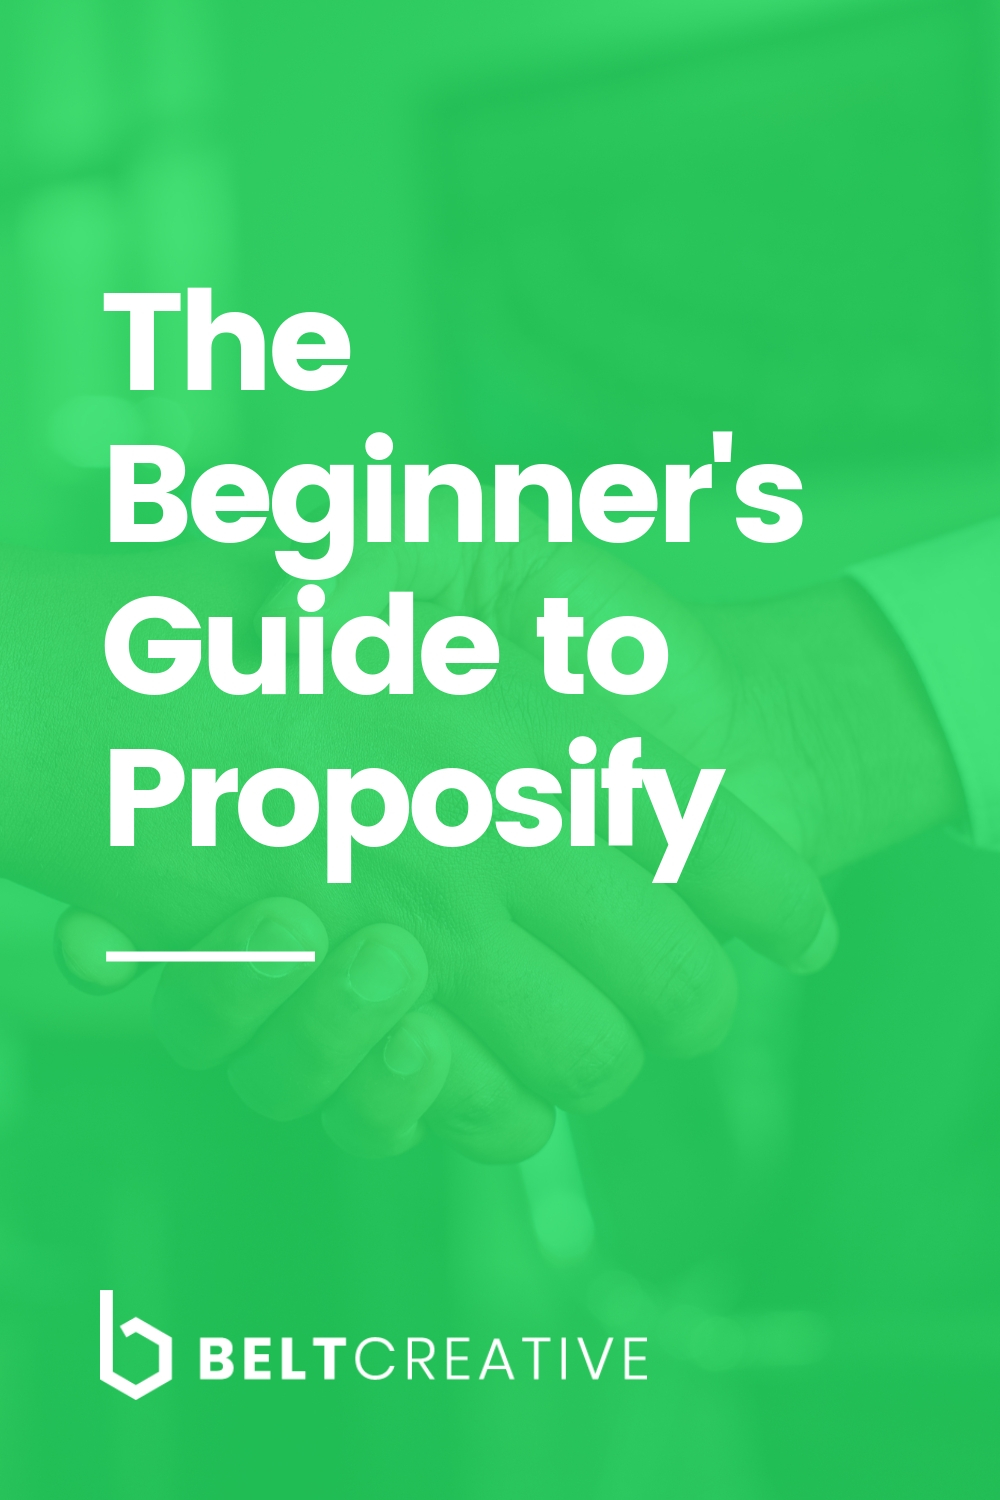 The Beginner's Guide to Proposify.jpg